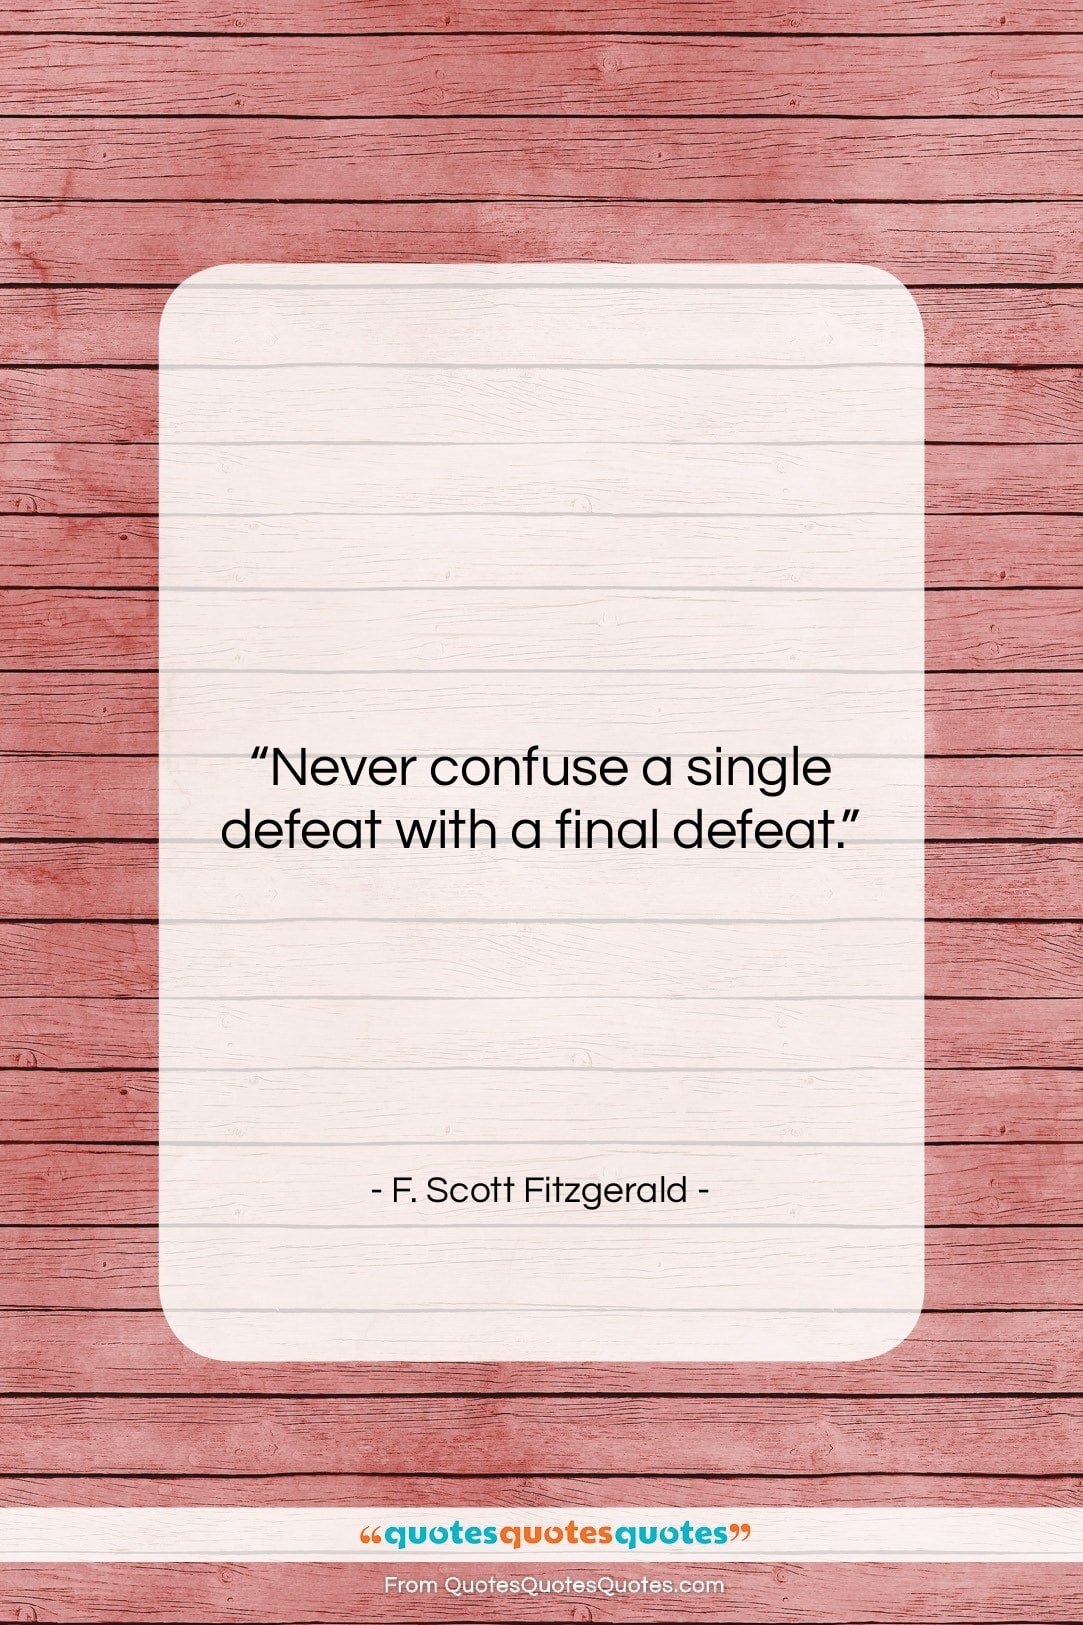 """F. Scott Fitzgerald quote: """"Never confuse a single defeat with a…""""- at QuotesQuotesQuotes.com"""